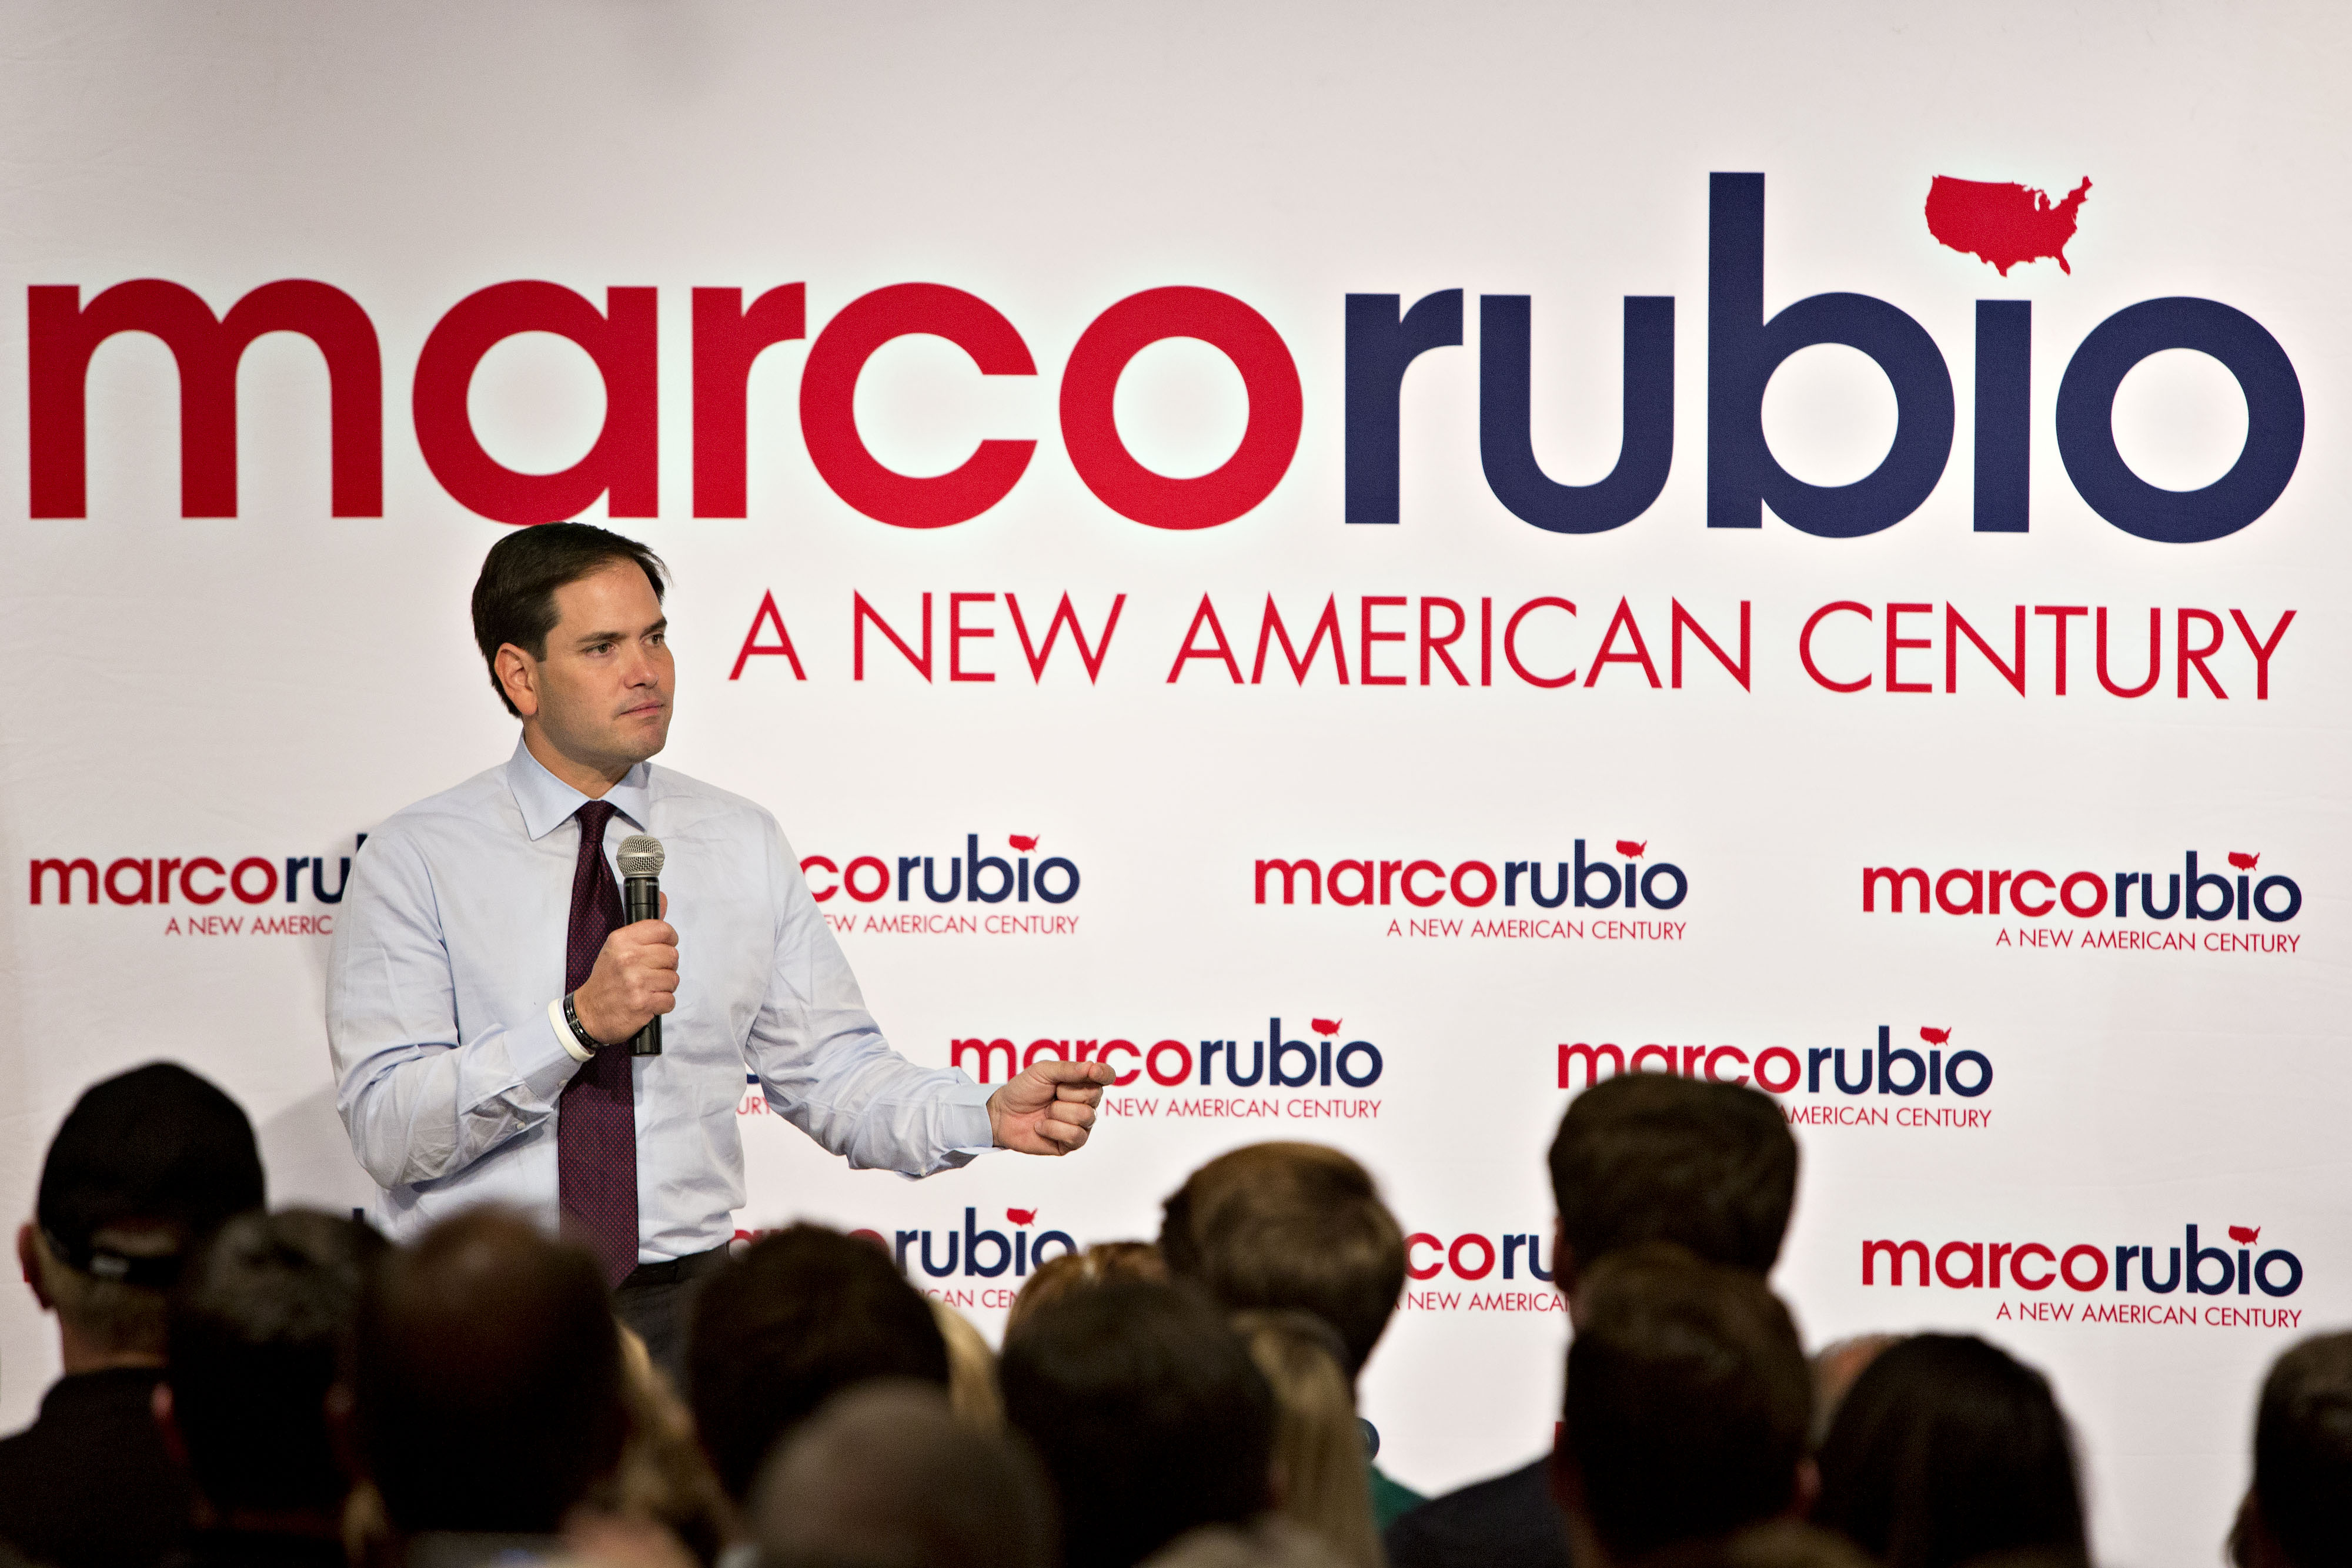 Marco Rubio Rallies With Supporters Ahead Of Republican Presidential Debate